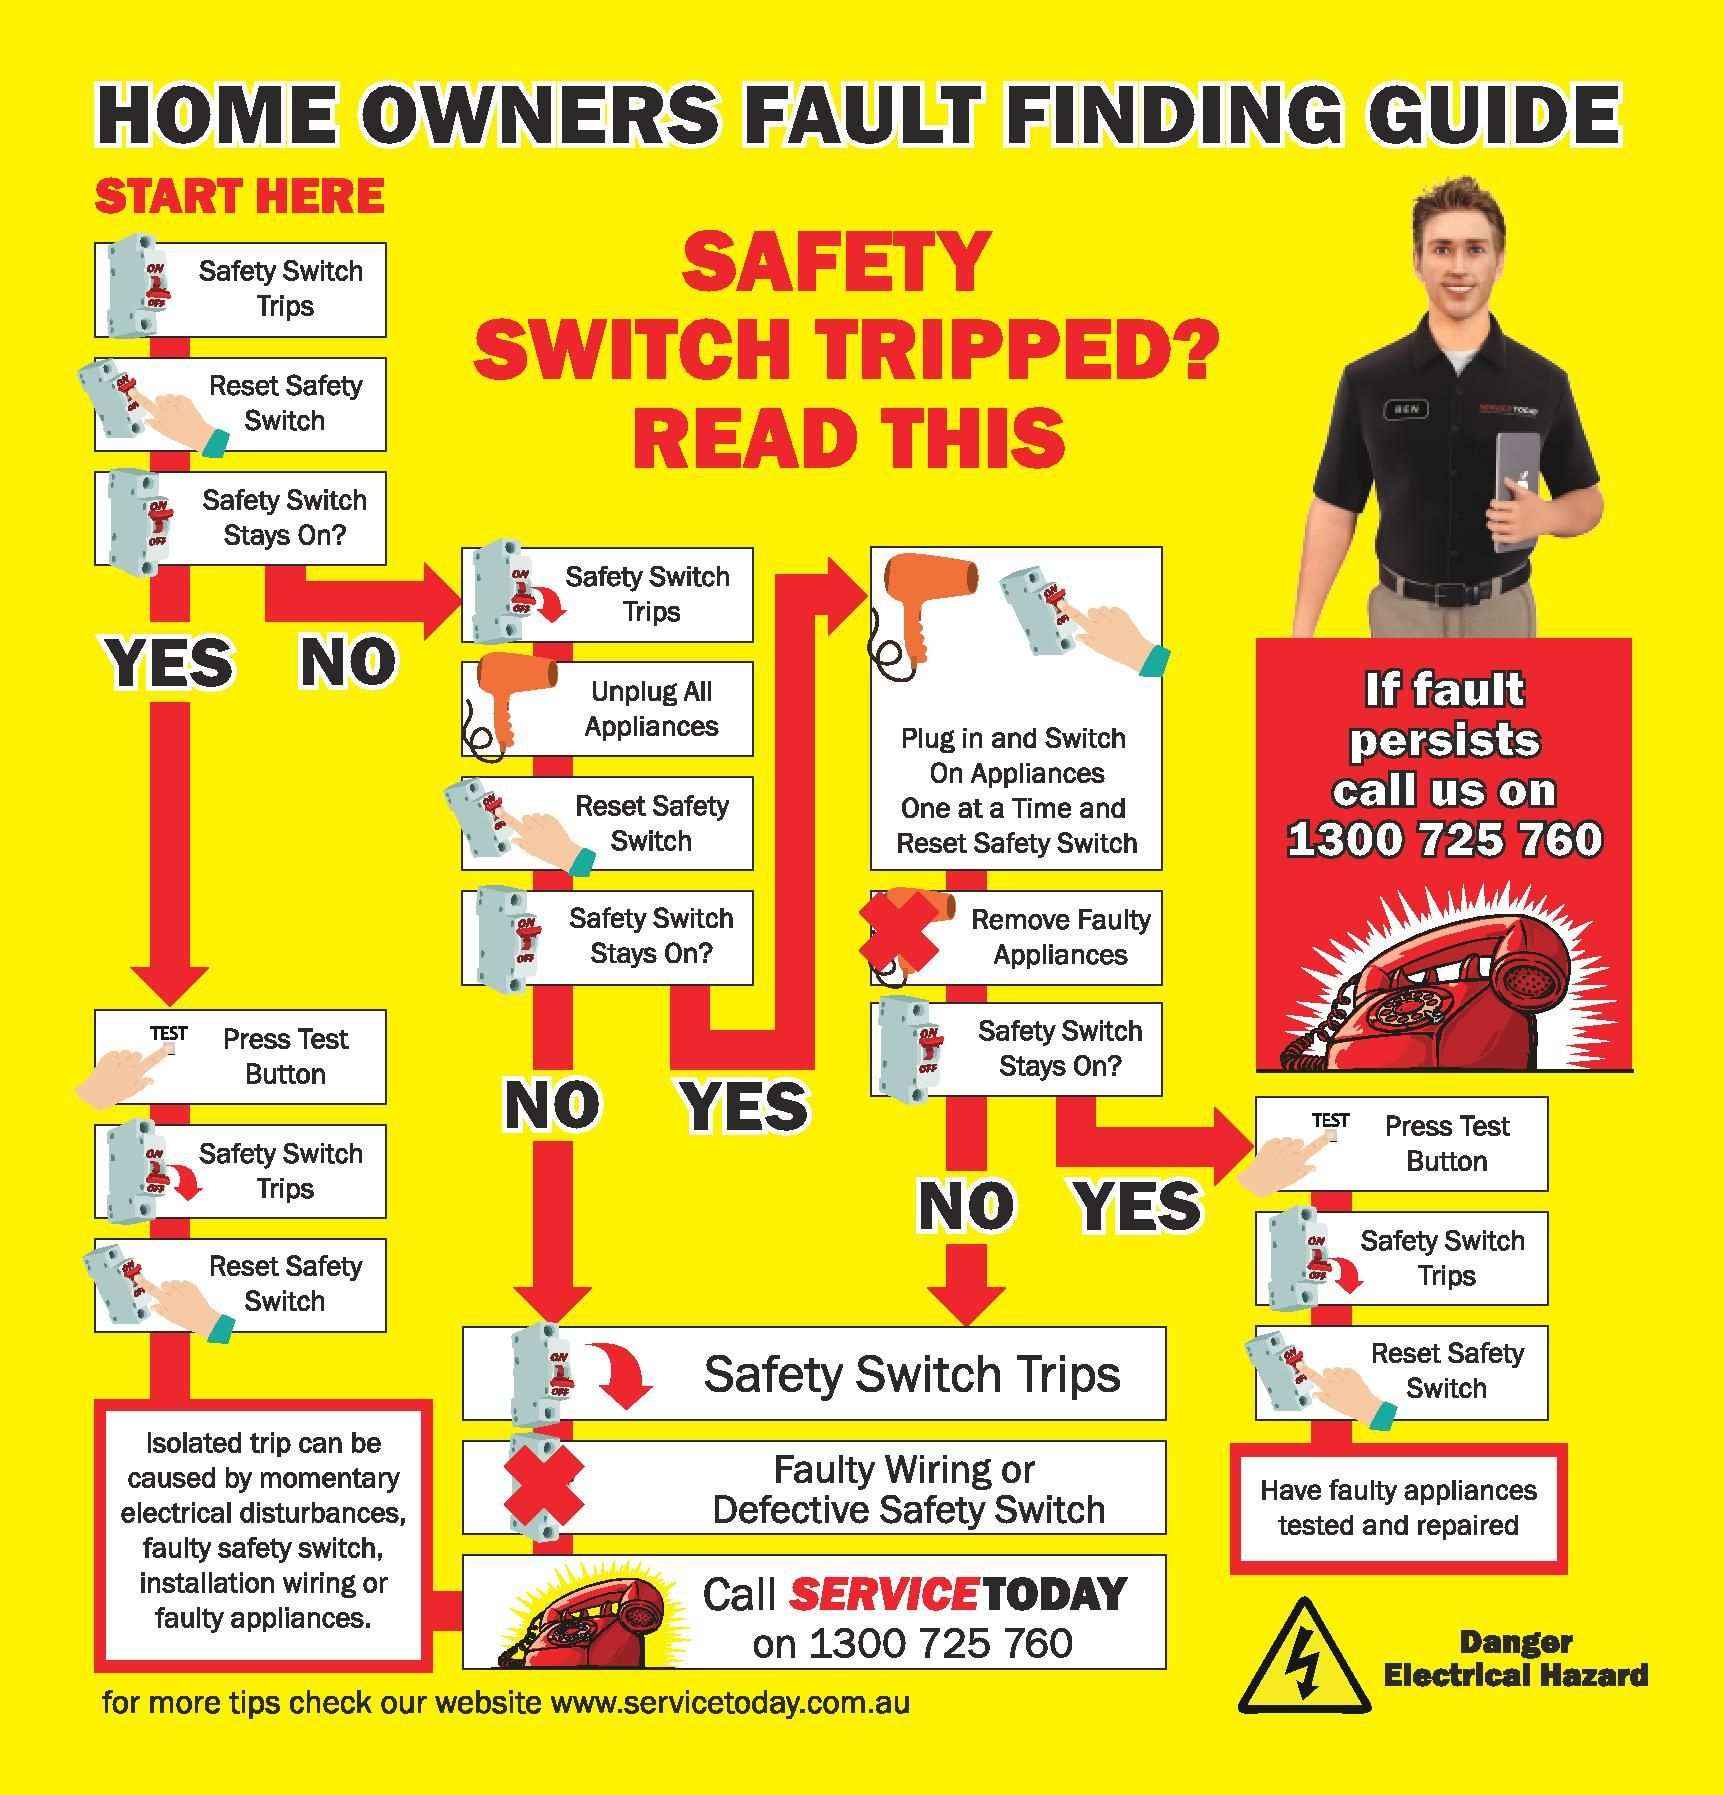 Home Owners Fault Finding Guide